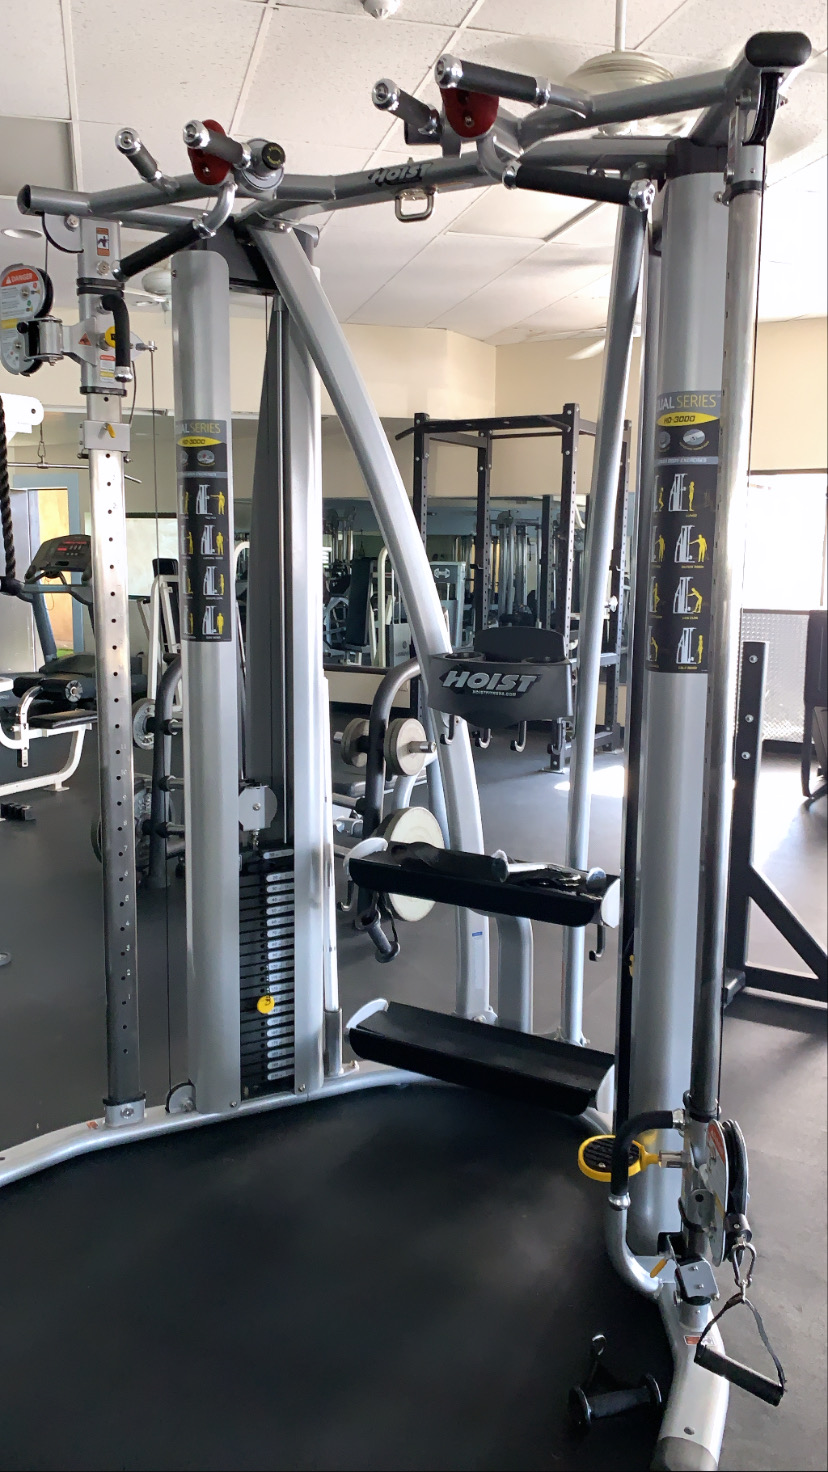 Hoist Functional Cable Trainer TruSelf Sporting Club image2